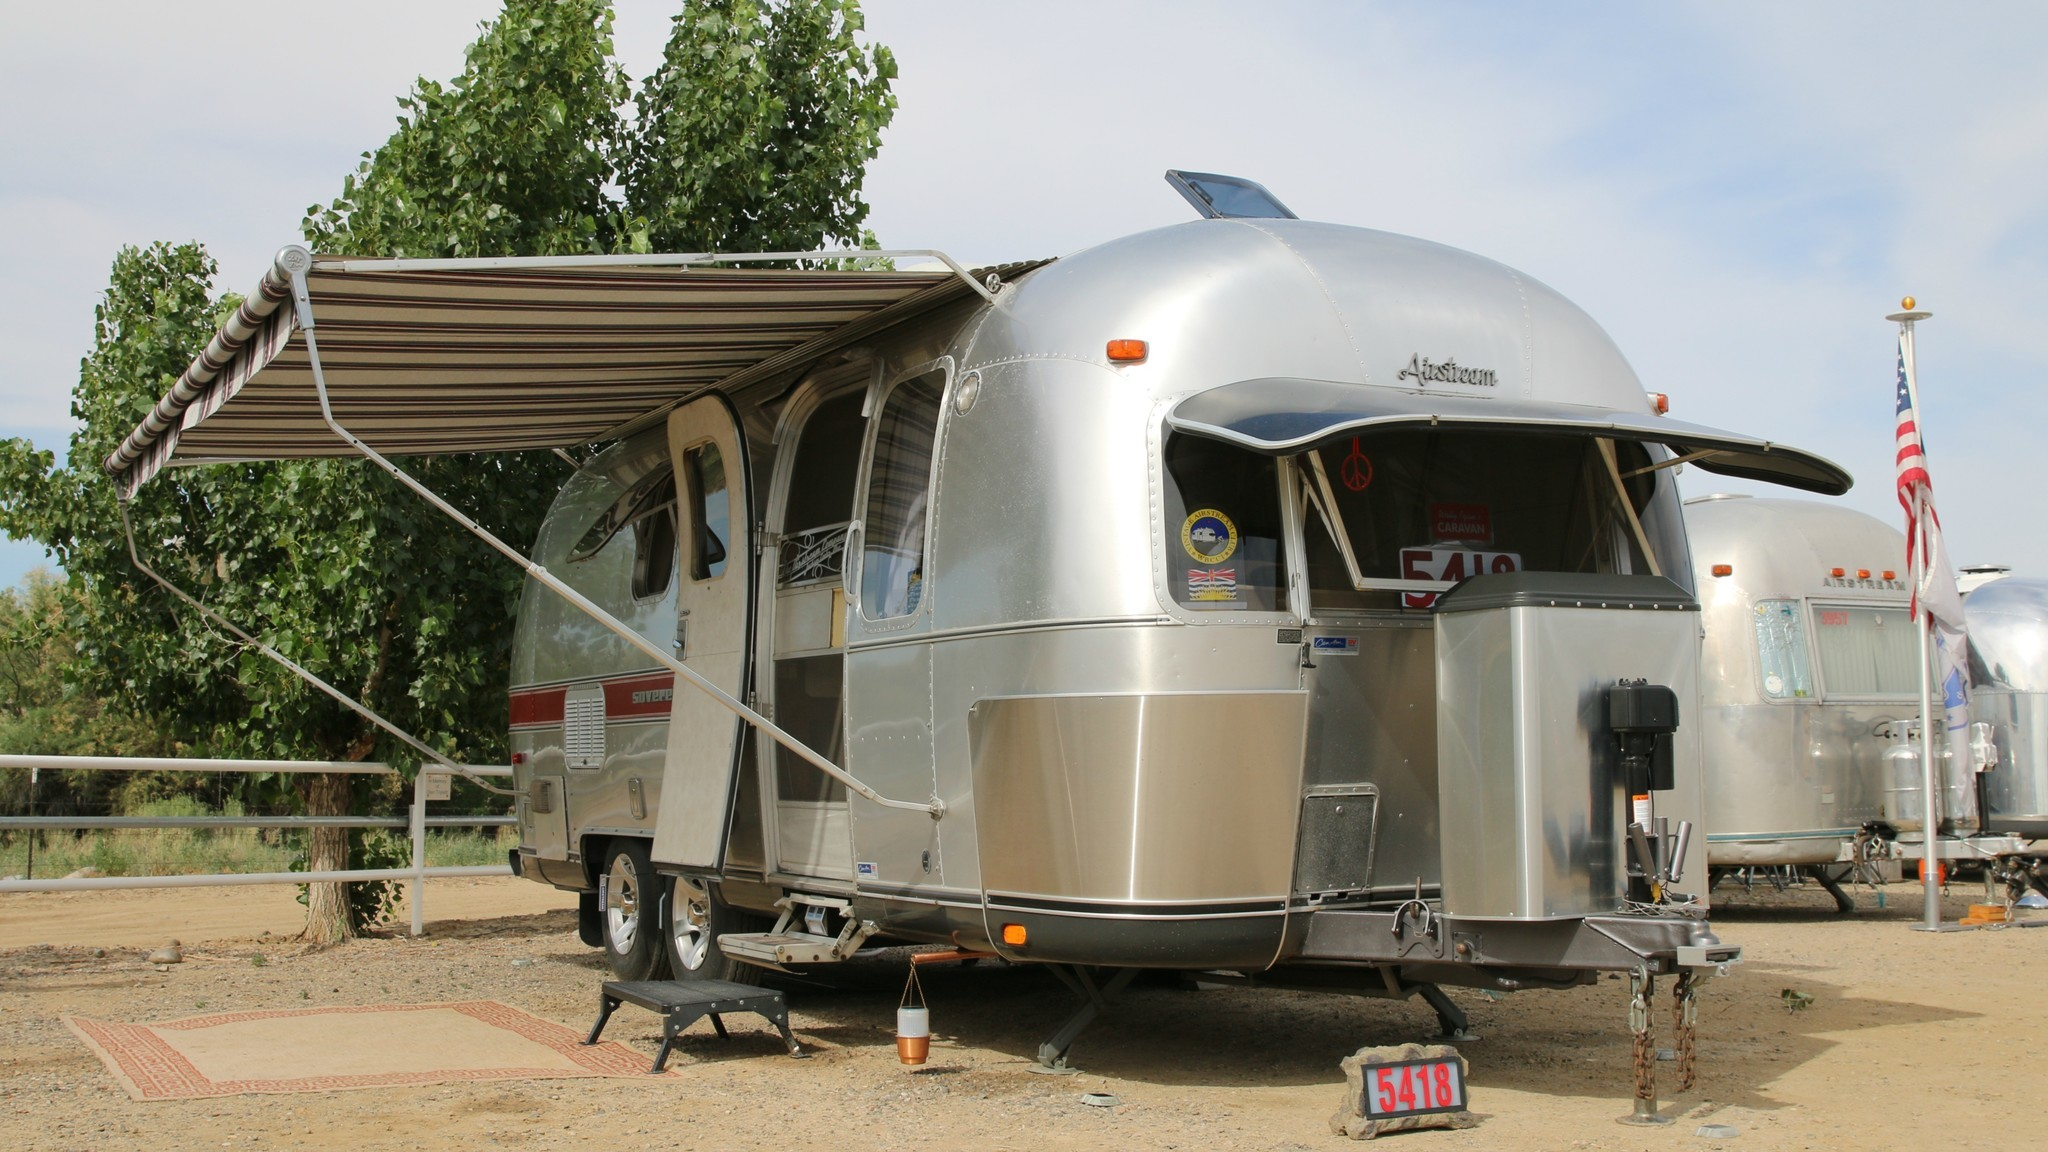 The beautiful Airstream myth and painful RV reality of life on the road